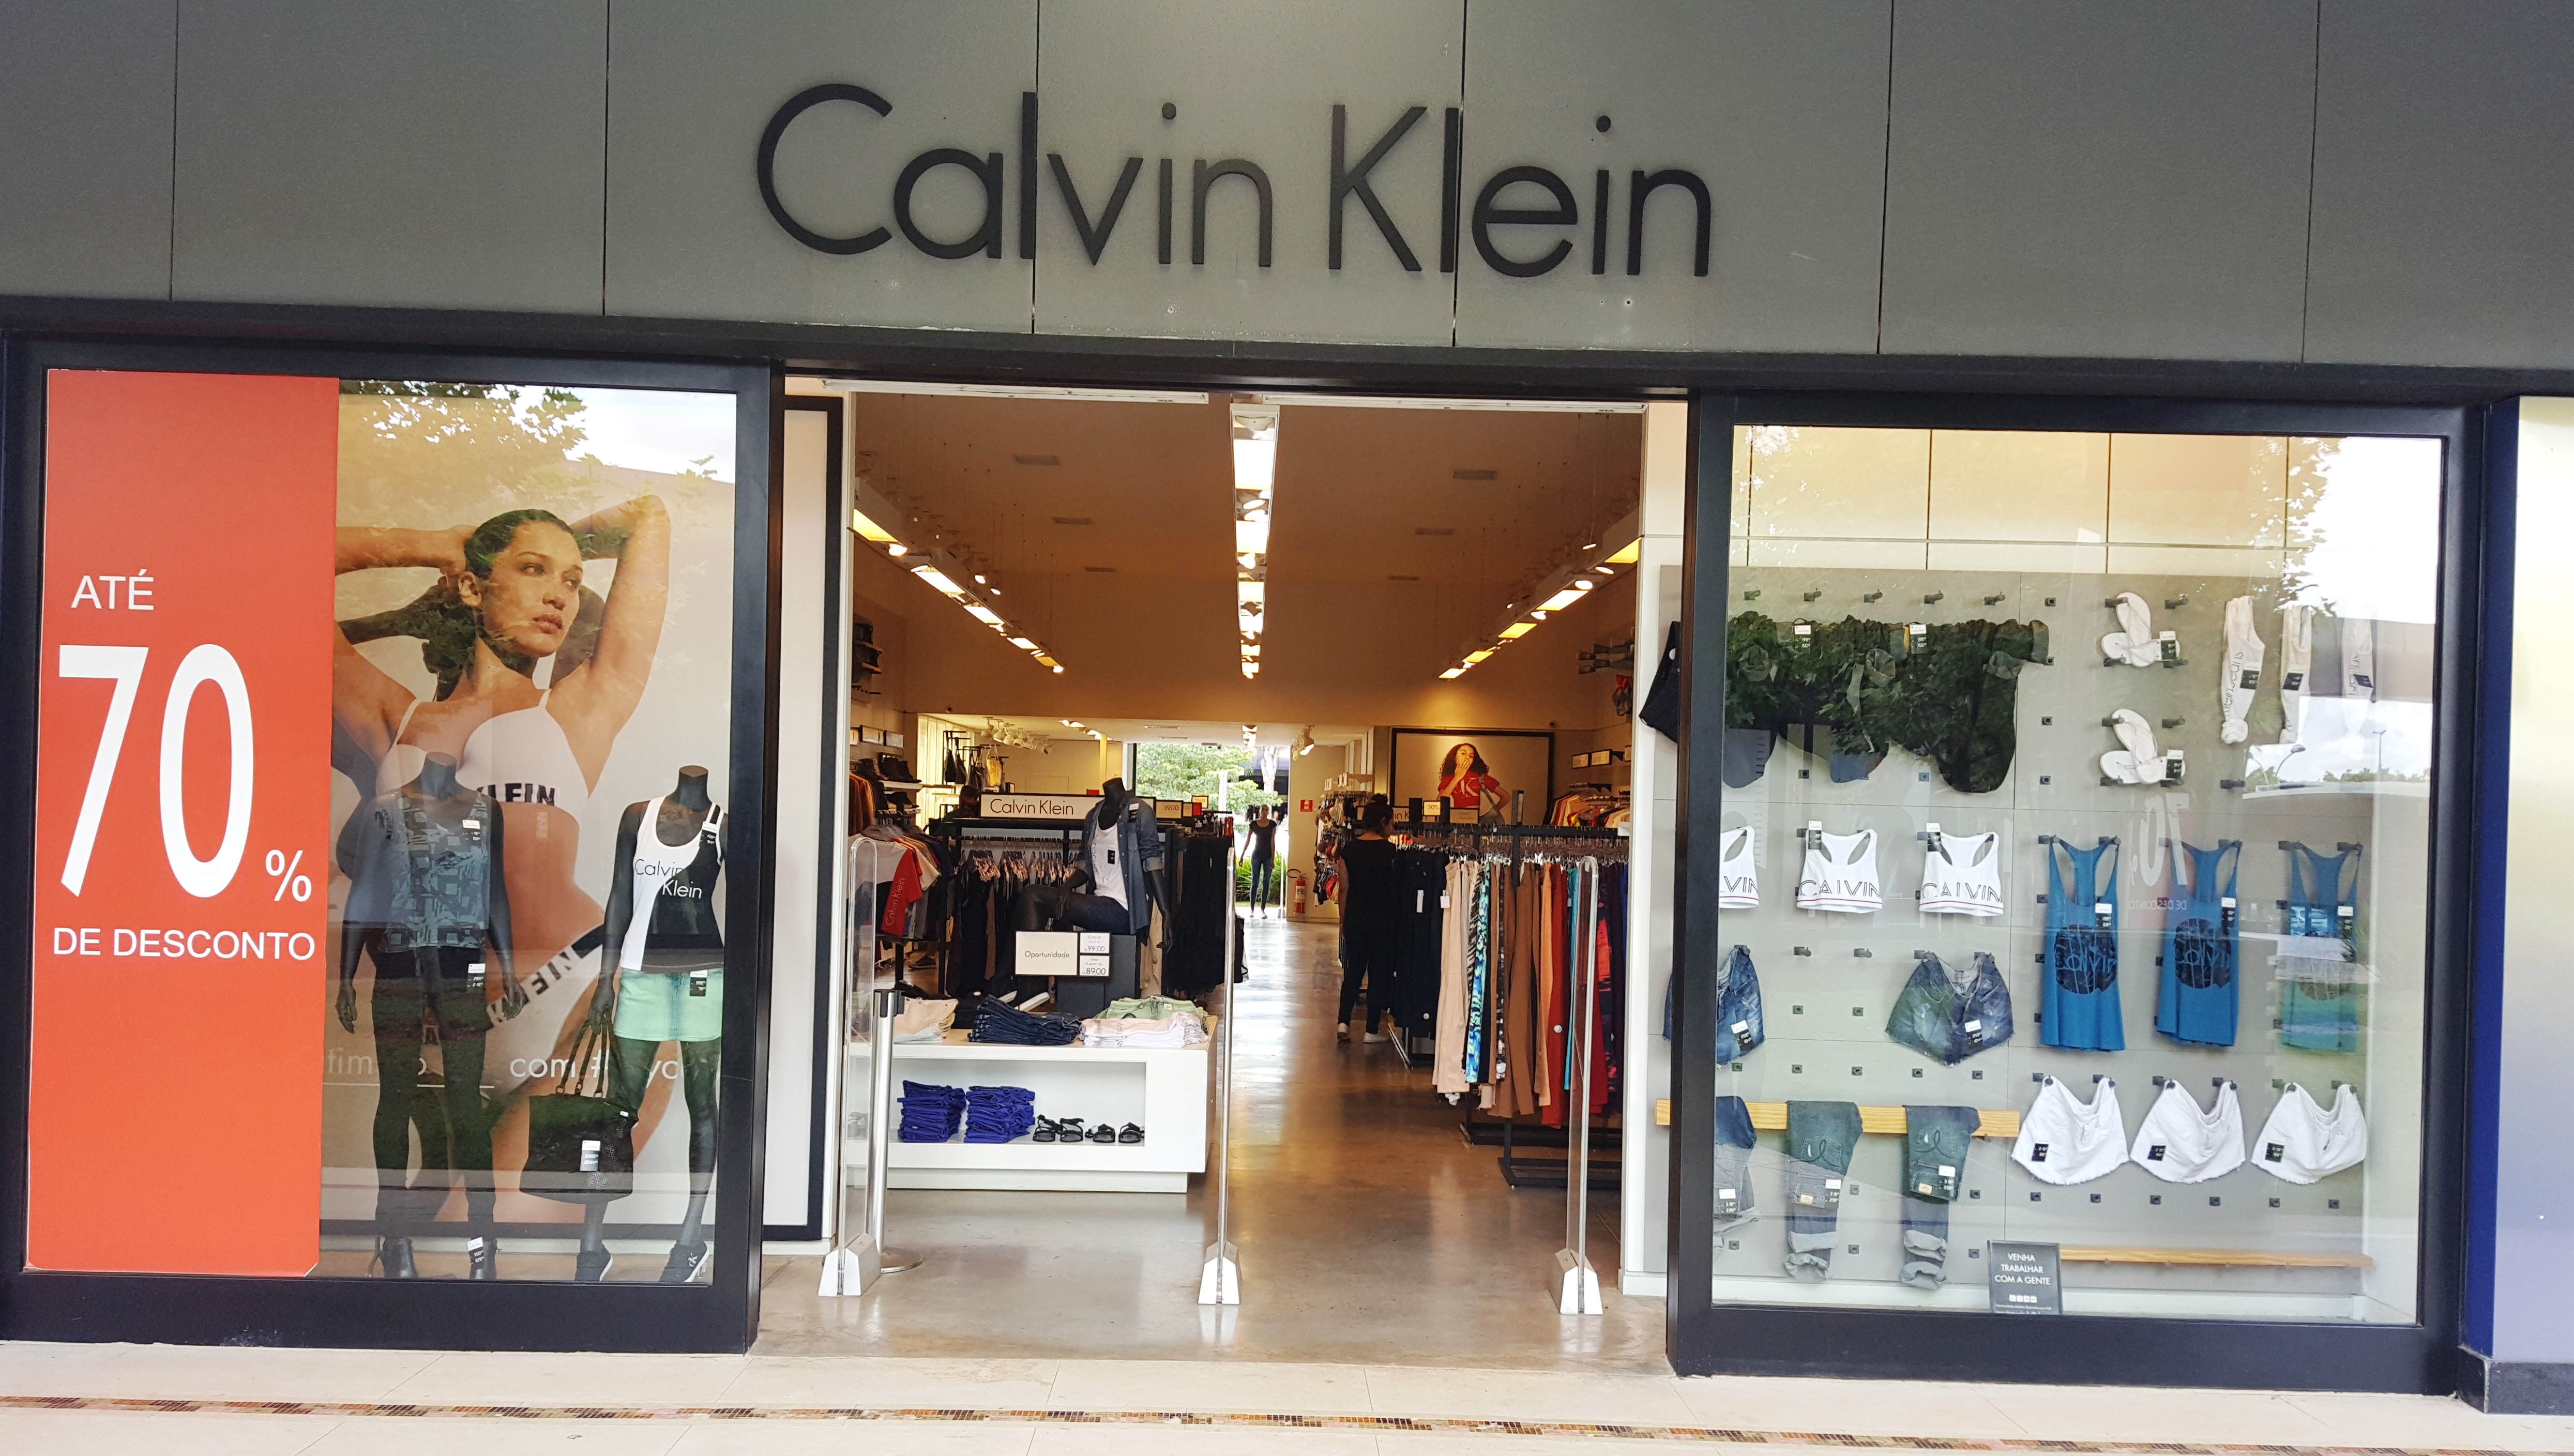 b8c1f220929aa mundo-dos-outlets-outlet-premium-sao-paulo-calvin-klein-mulher-1 ...